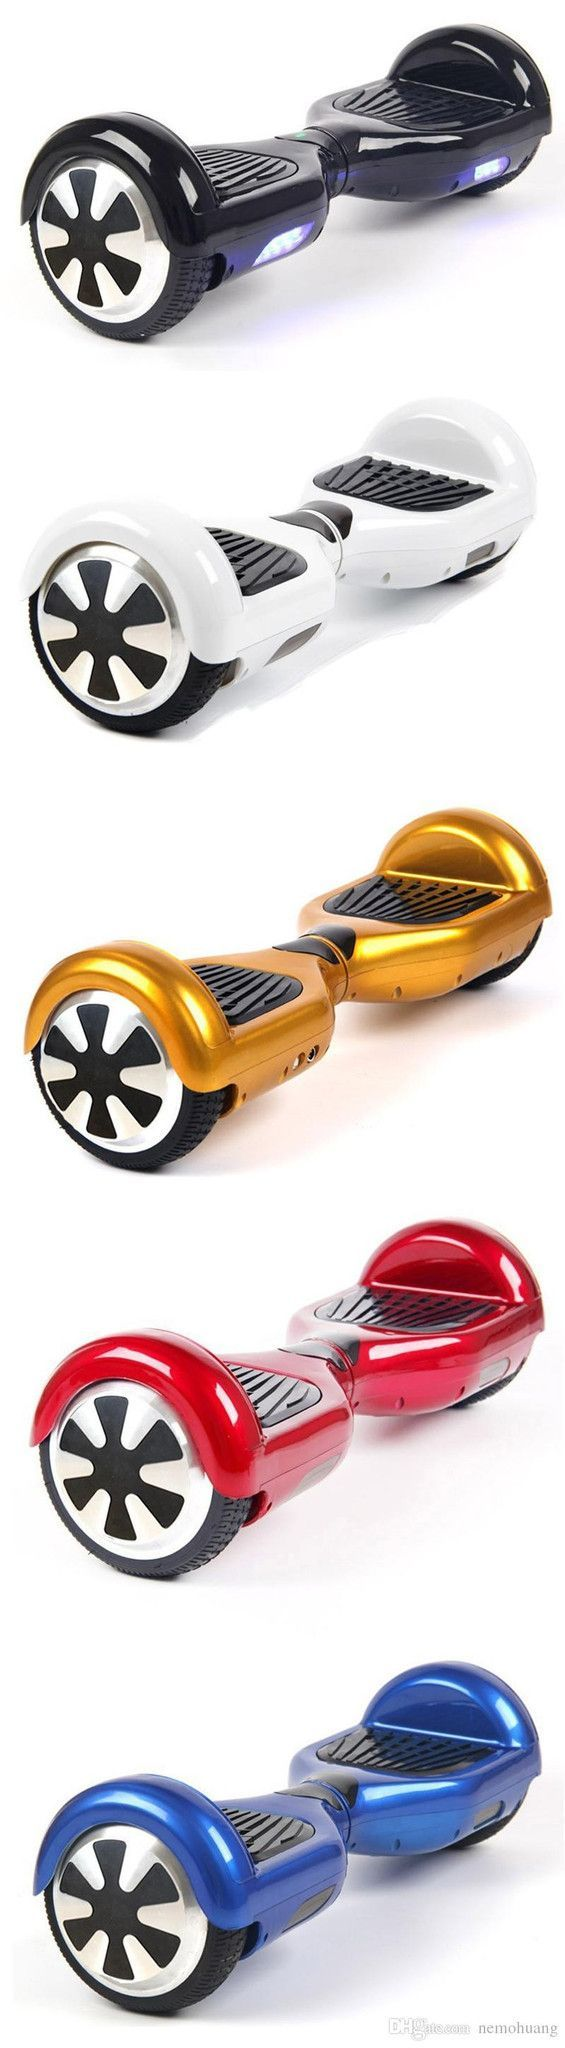 Gagner Un Hoverboard! Smart Scooter Hover board with LED lights #scooter #balanceboardhttp://pinterest.com/pin/487725834624772857/